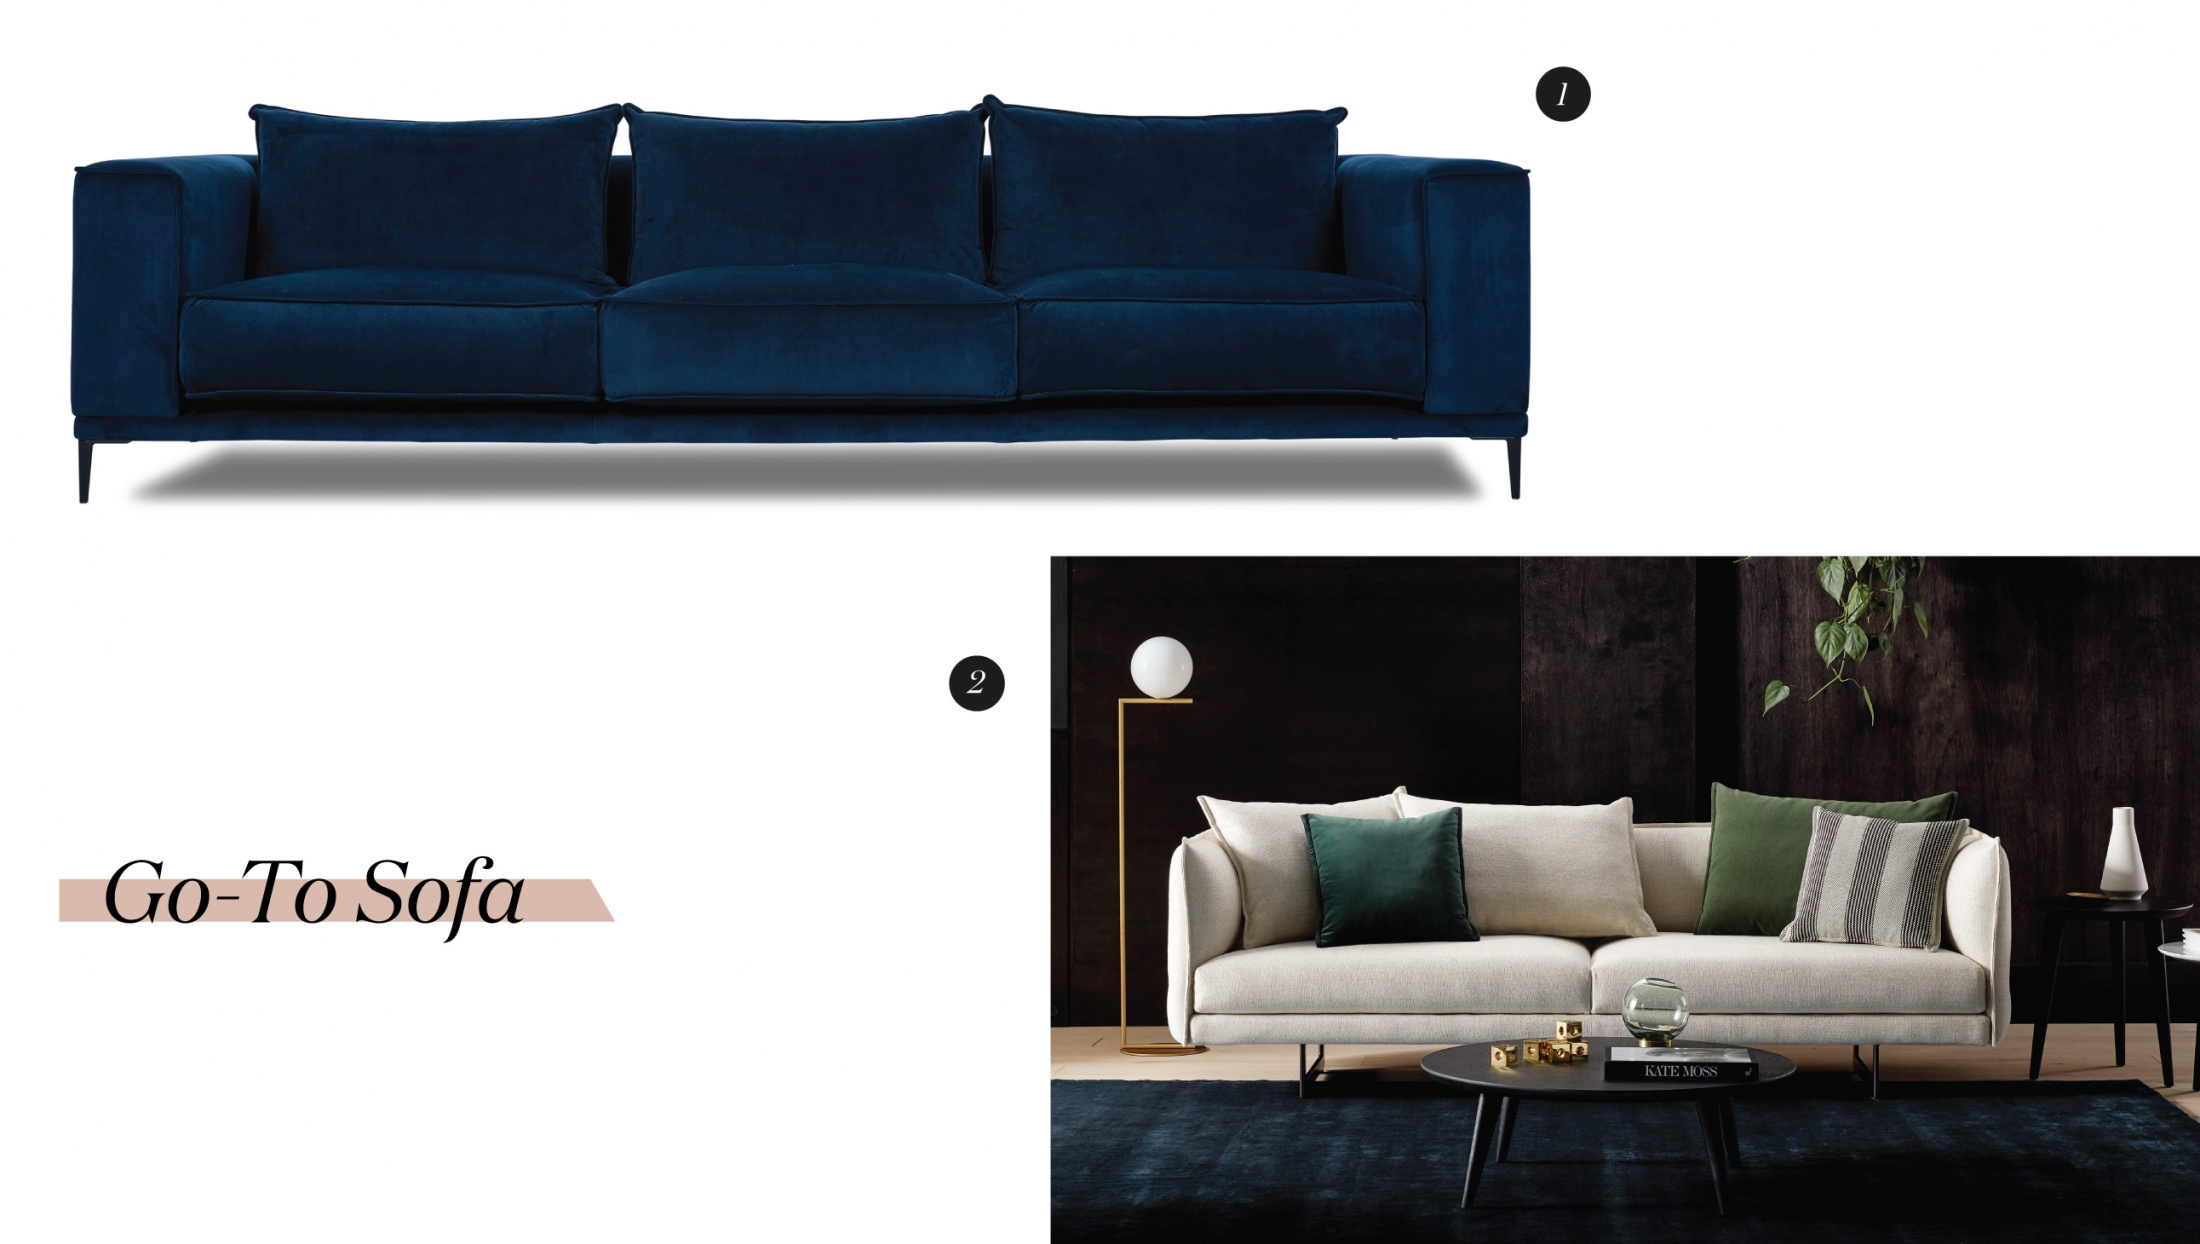 moss studio sofa reviews arhaus furniture club the best in world although it was designed 1972 i feel s making resurgence right now if you were thinking that a leather made switzerland sounds expensive